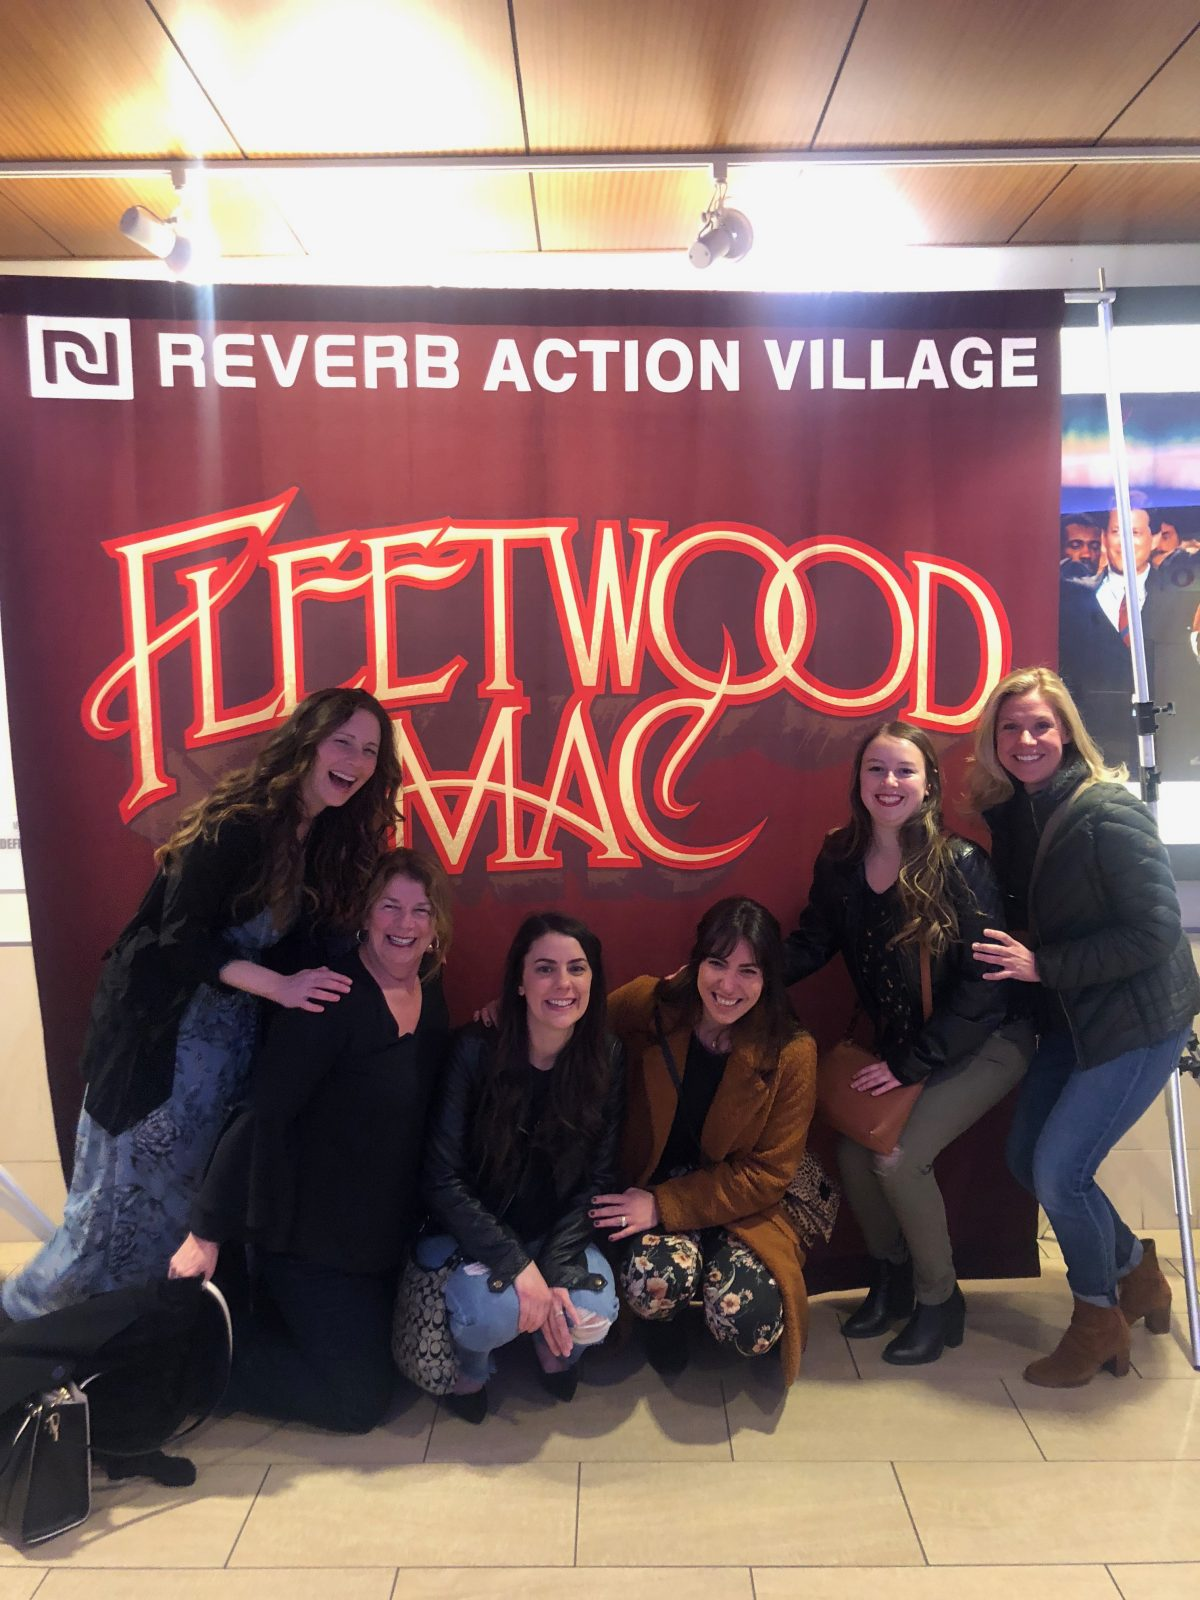 Women posing and laughing in front of Fleetwood Mac sign